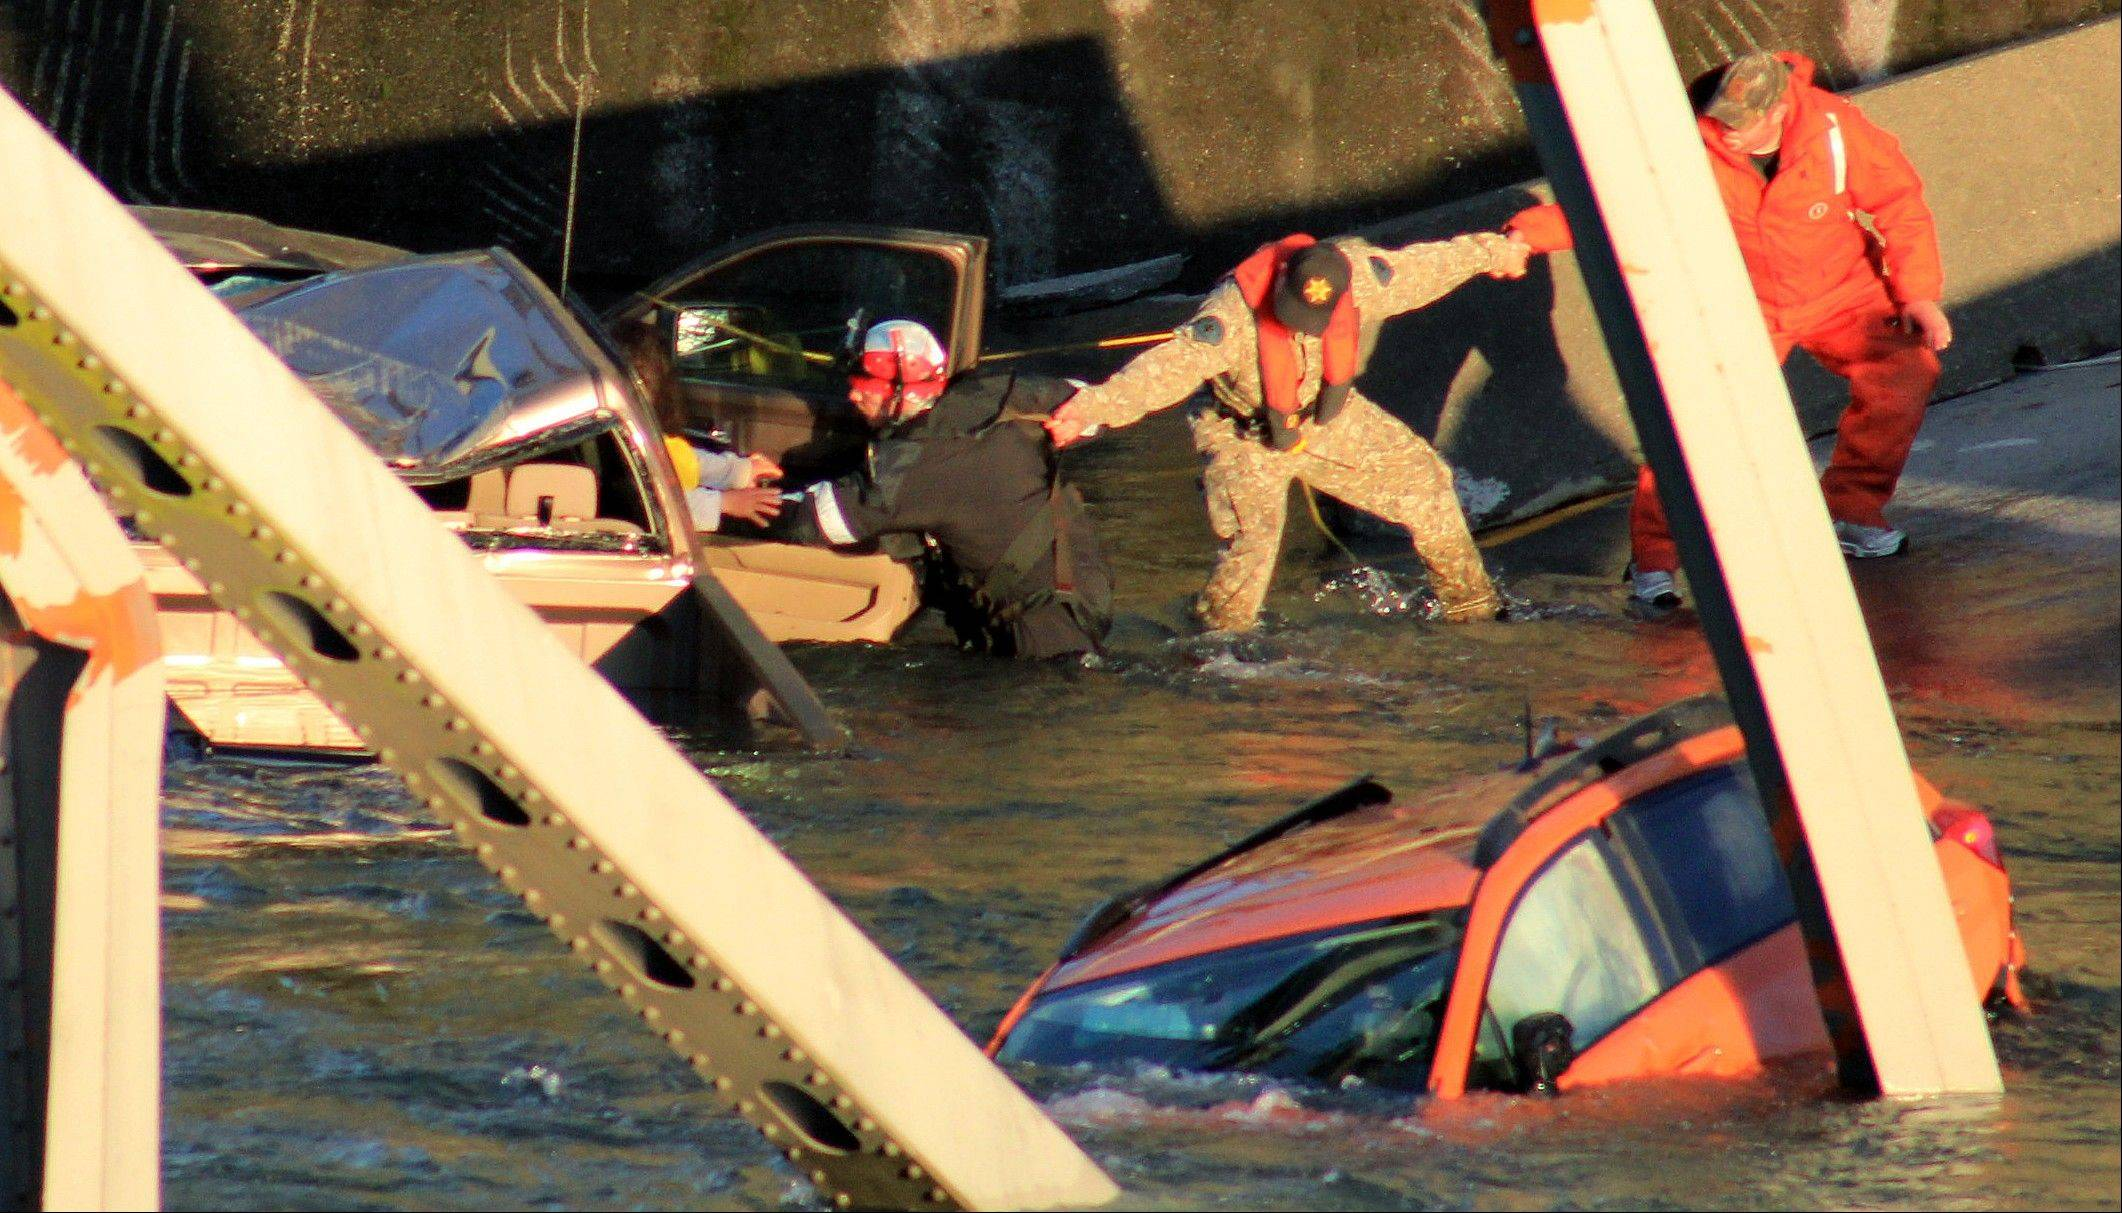 Rescue workers form a human chain as they begin to remove a woman who reaches out from a smashed pickup truck that fell into the Skagit River after the collapse of the Interstate 5 bridge Thursday, May 23, 2013, in Mount Vernon, Wash.